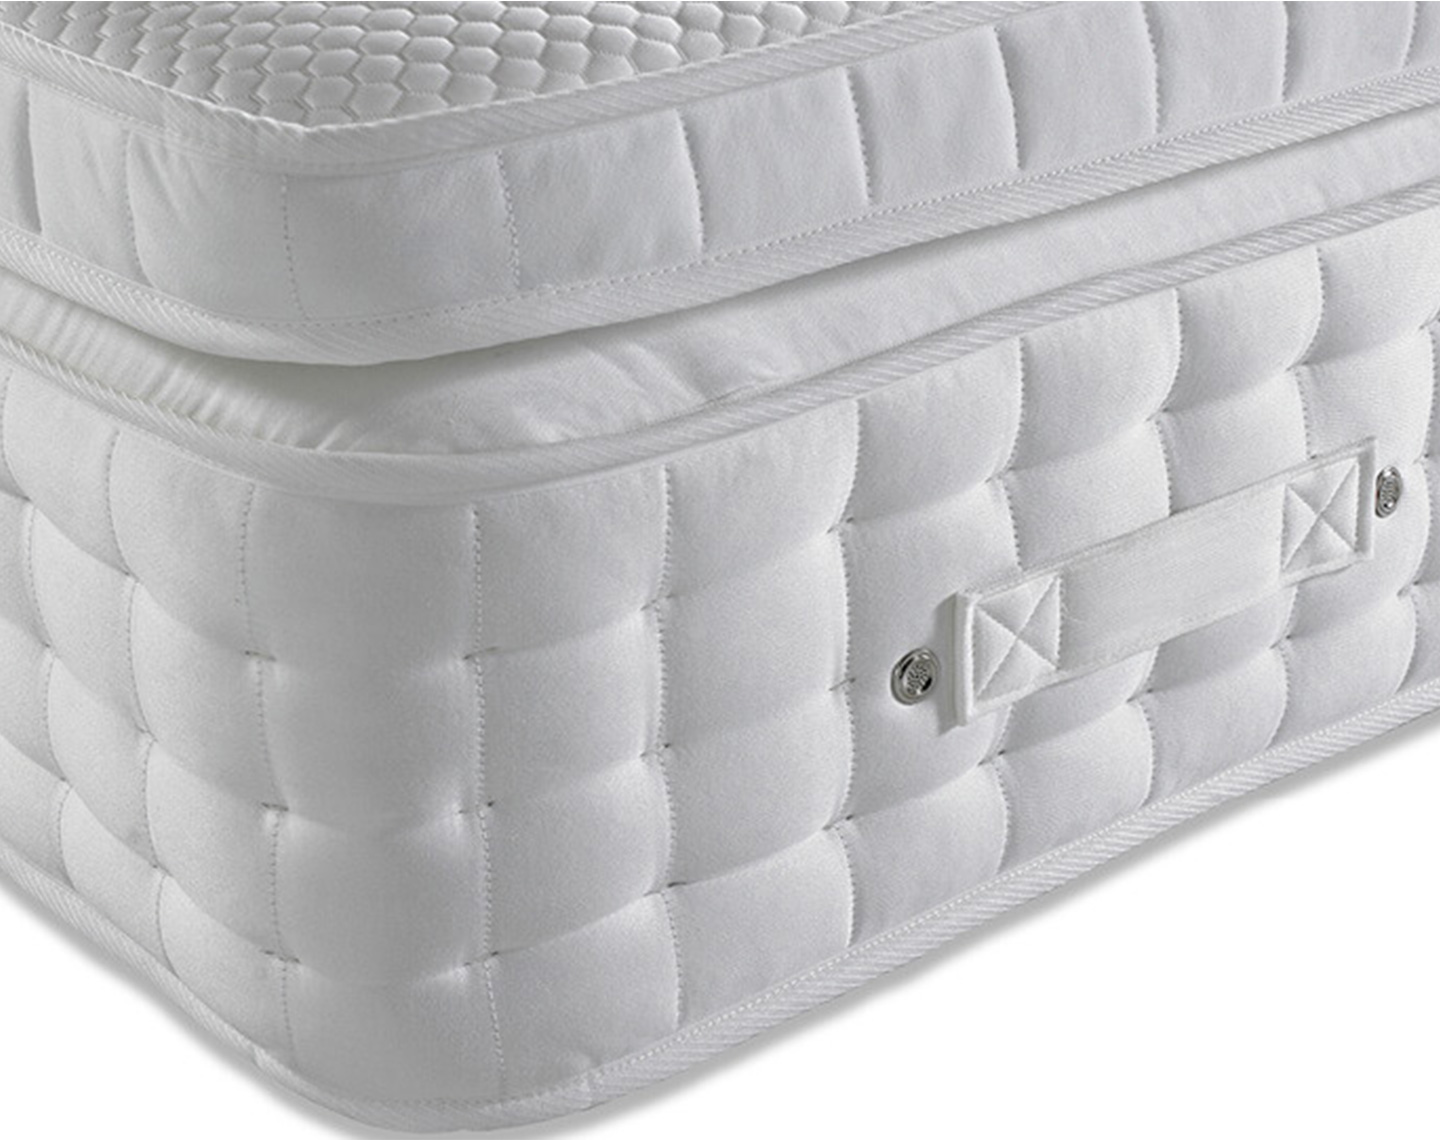 Pillow Top 4000 Pocket Spring Mattress angle